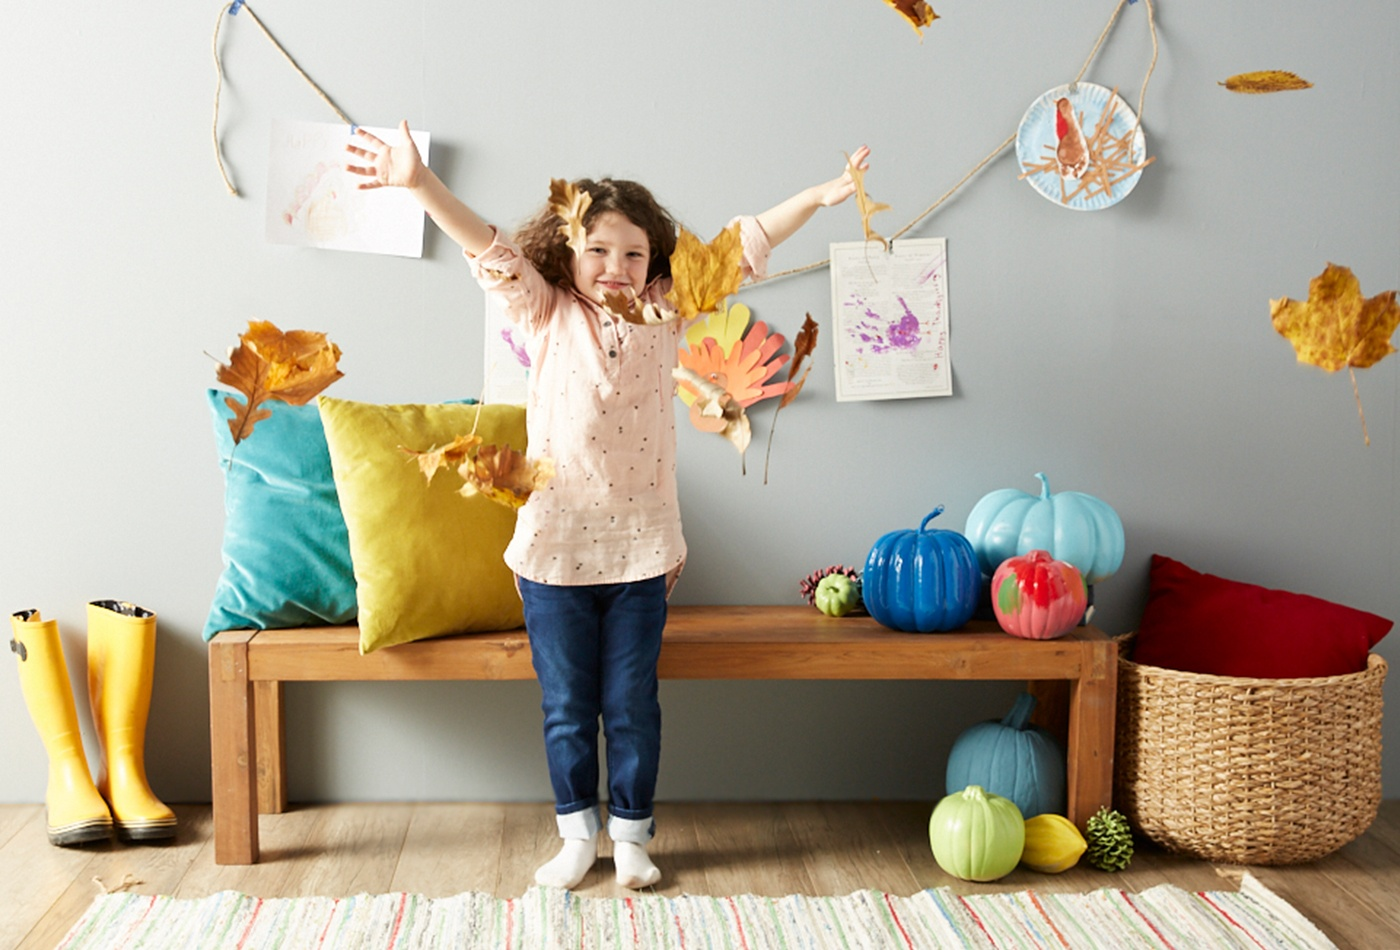 child-throwing-leaves-in-thanksgiving-decorated-home